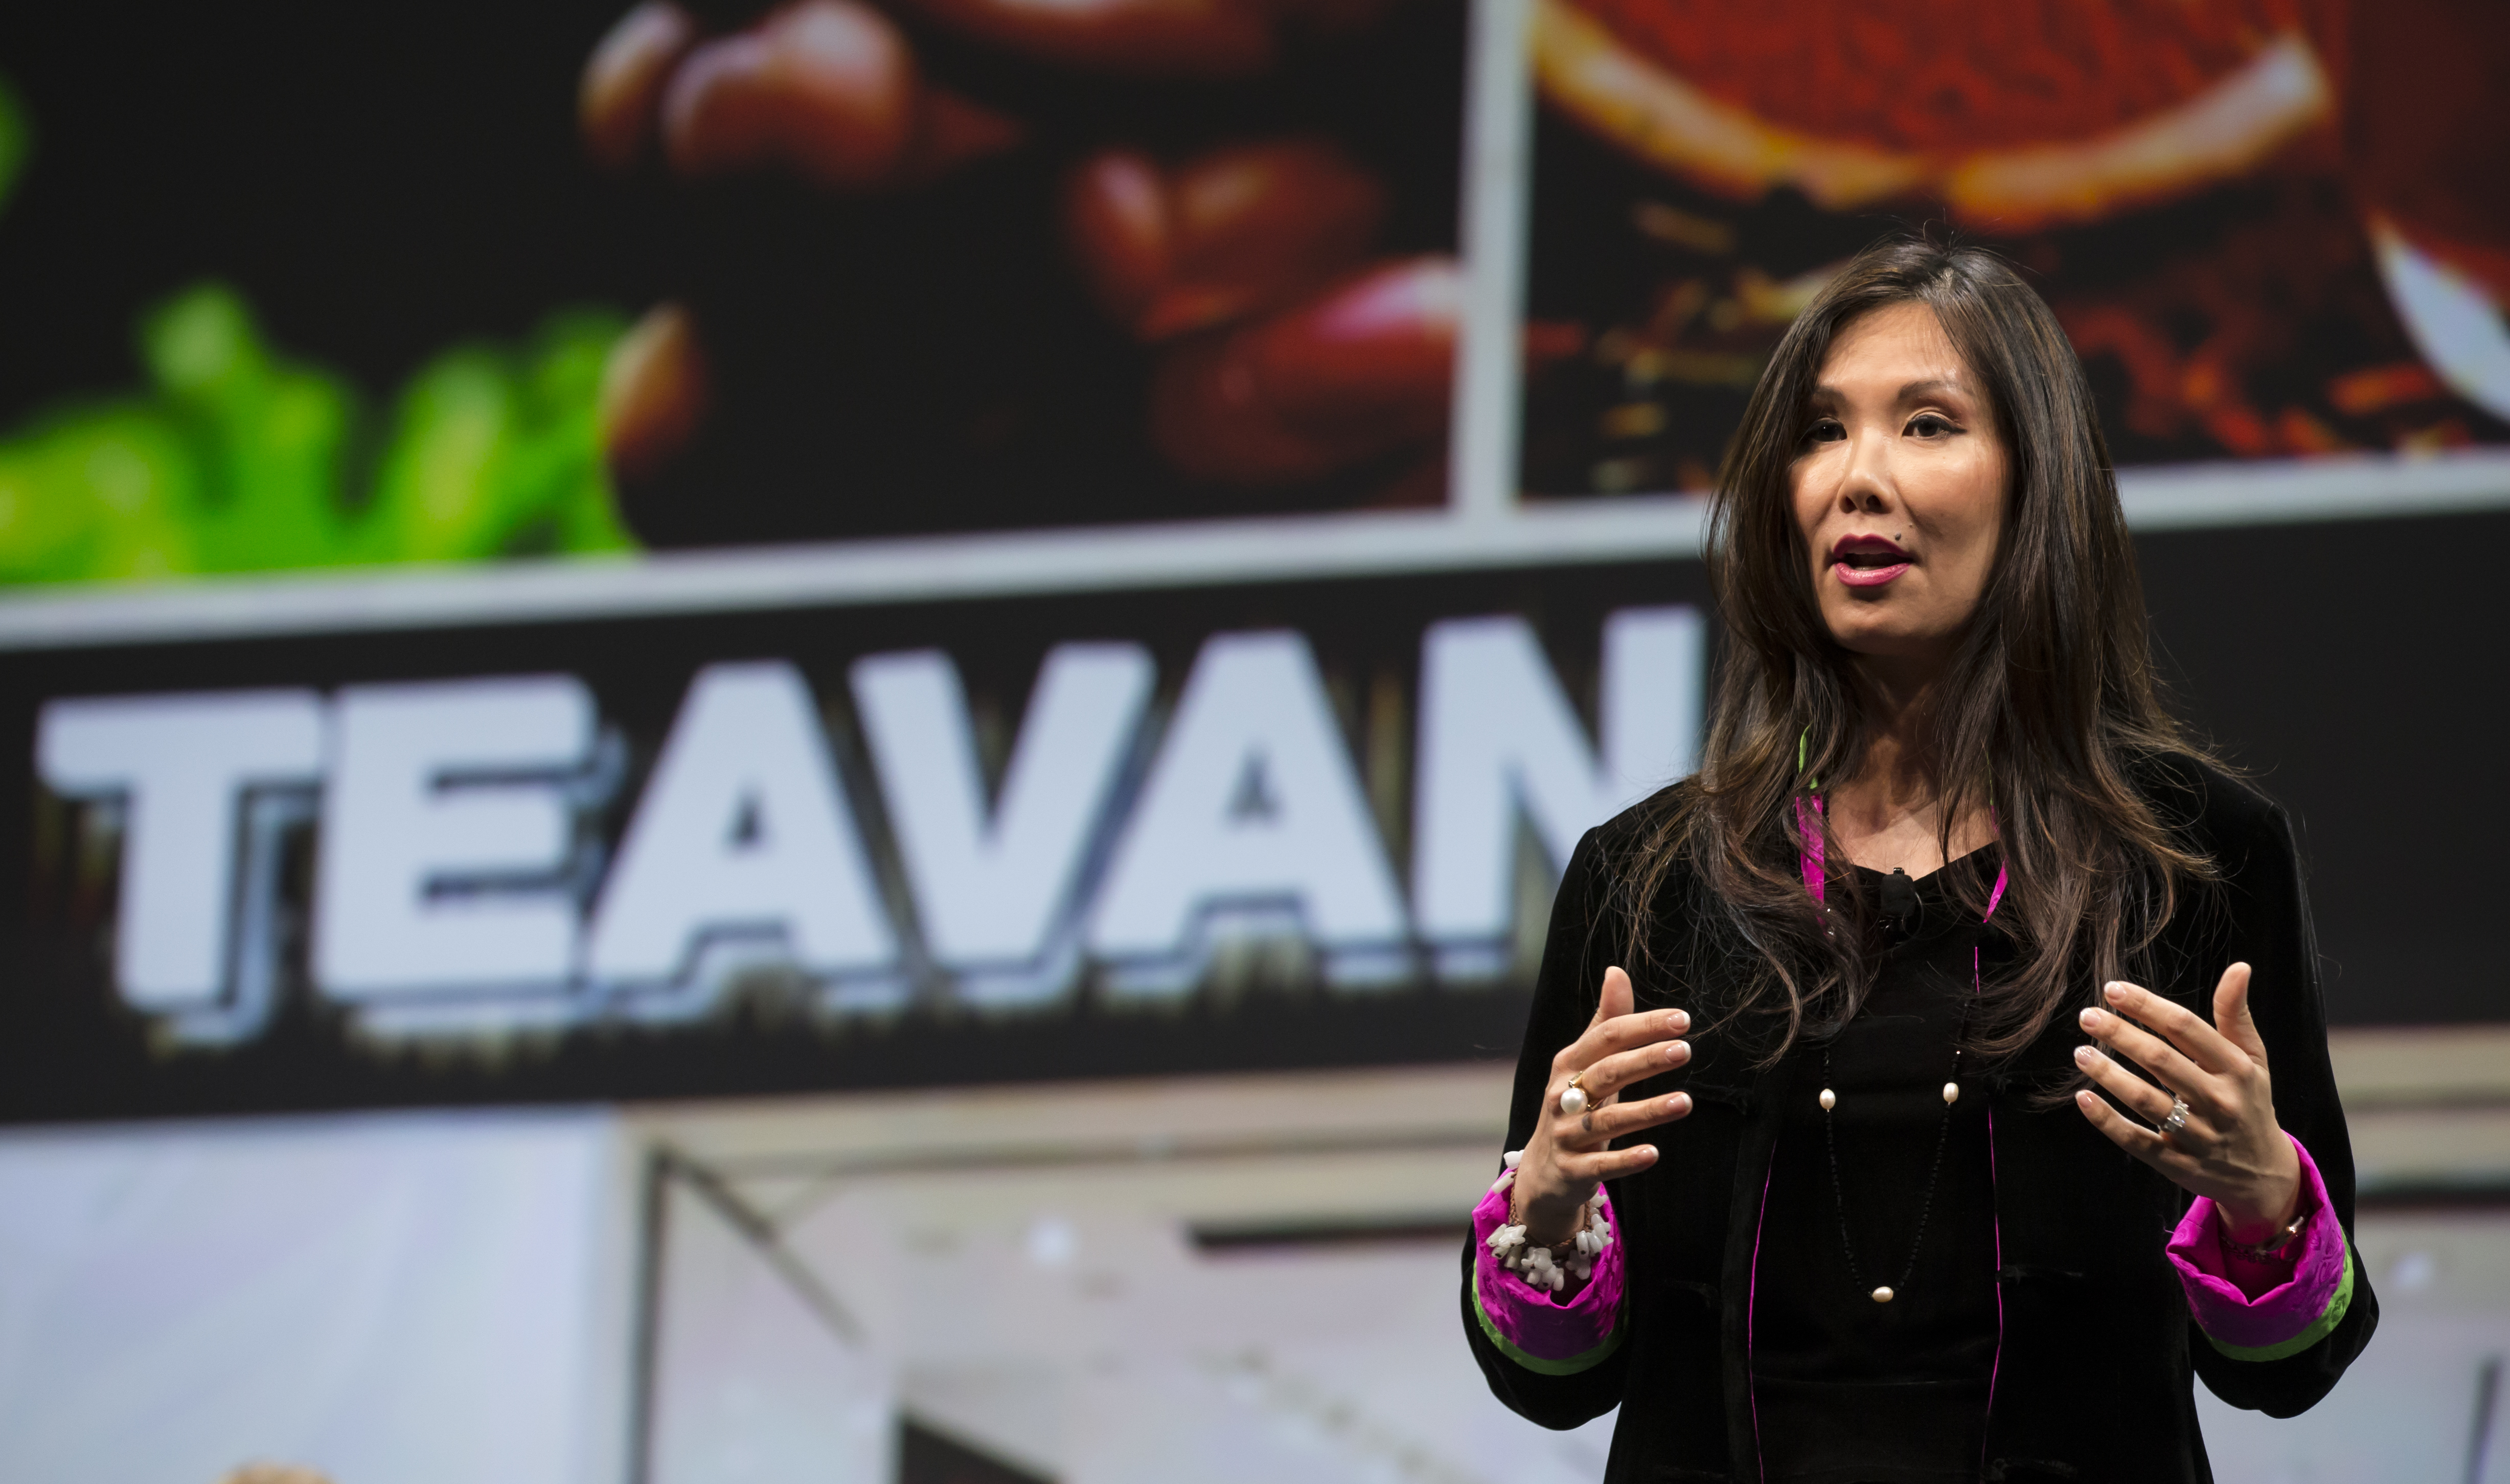 Teavana president Annie Young-Scrivner speaks during Starbucks annual shareholders meeting March 18, 2015 in Seattle, Washington.